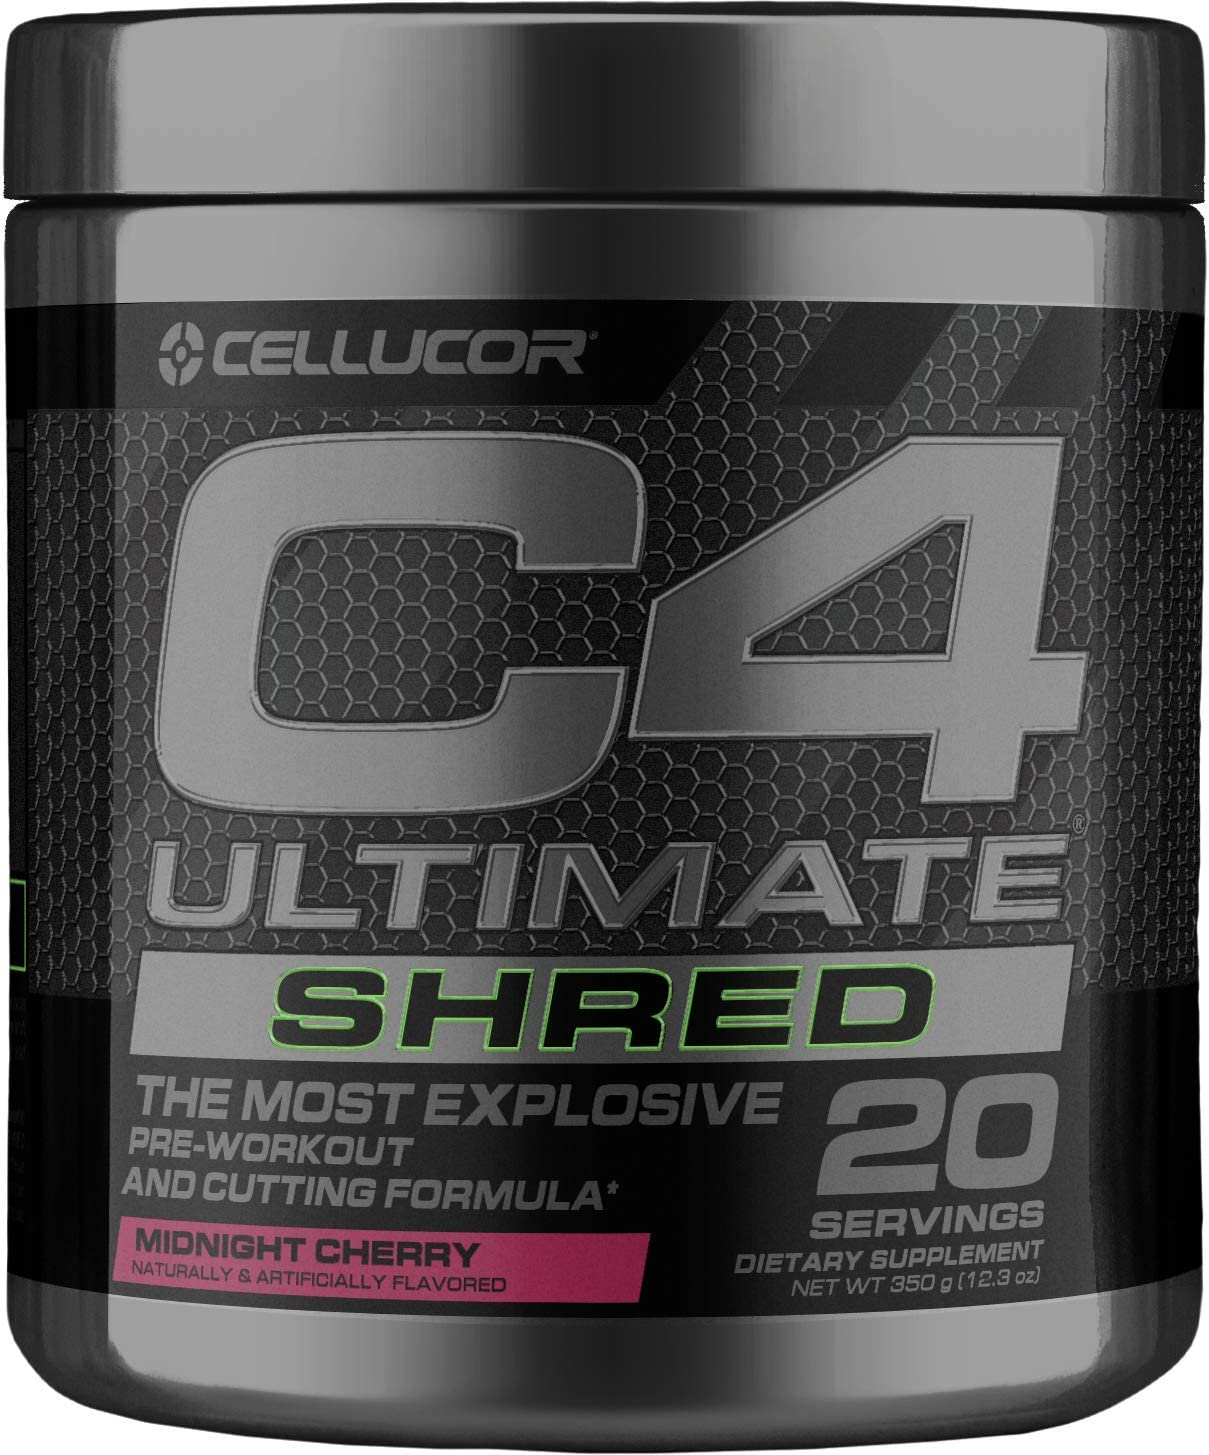 Cellucor C4 Ultimate Shred Pre Workout Powder, Fat Burner for Men & Women, Weight Loss Supplement with Ginger Root Extract, Midnight Cherry, 20 Servings: Health & Personal Care